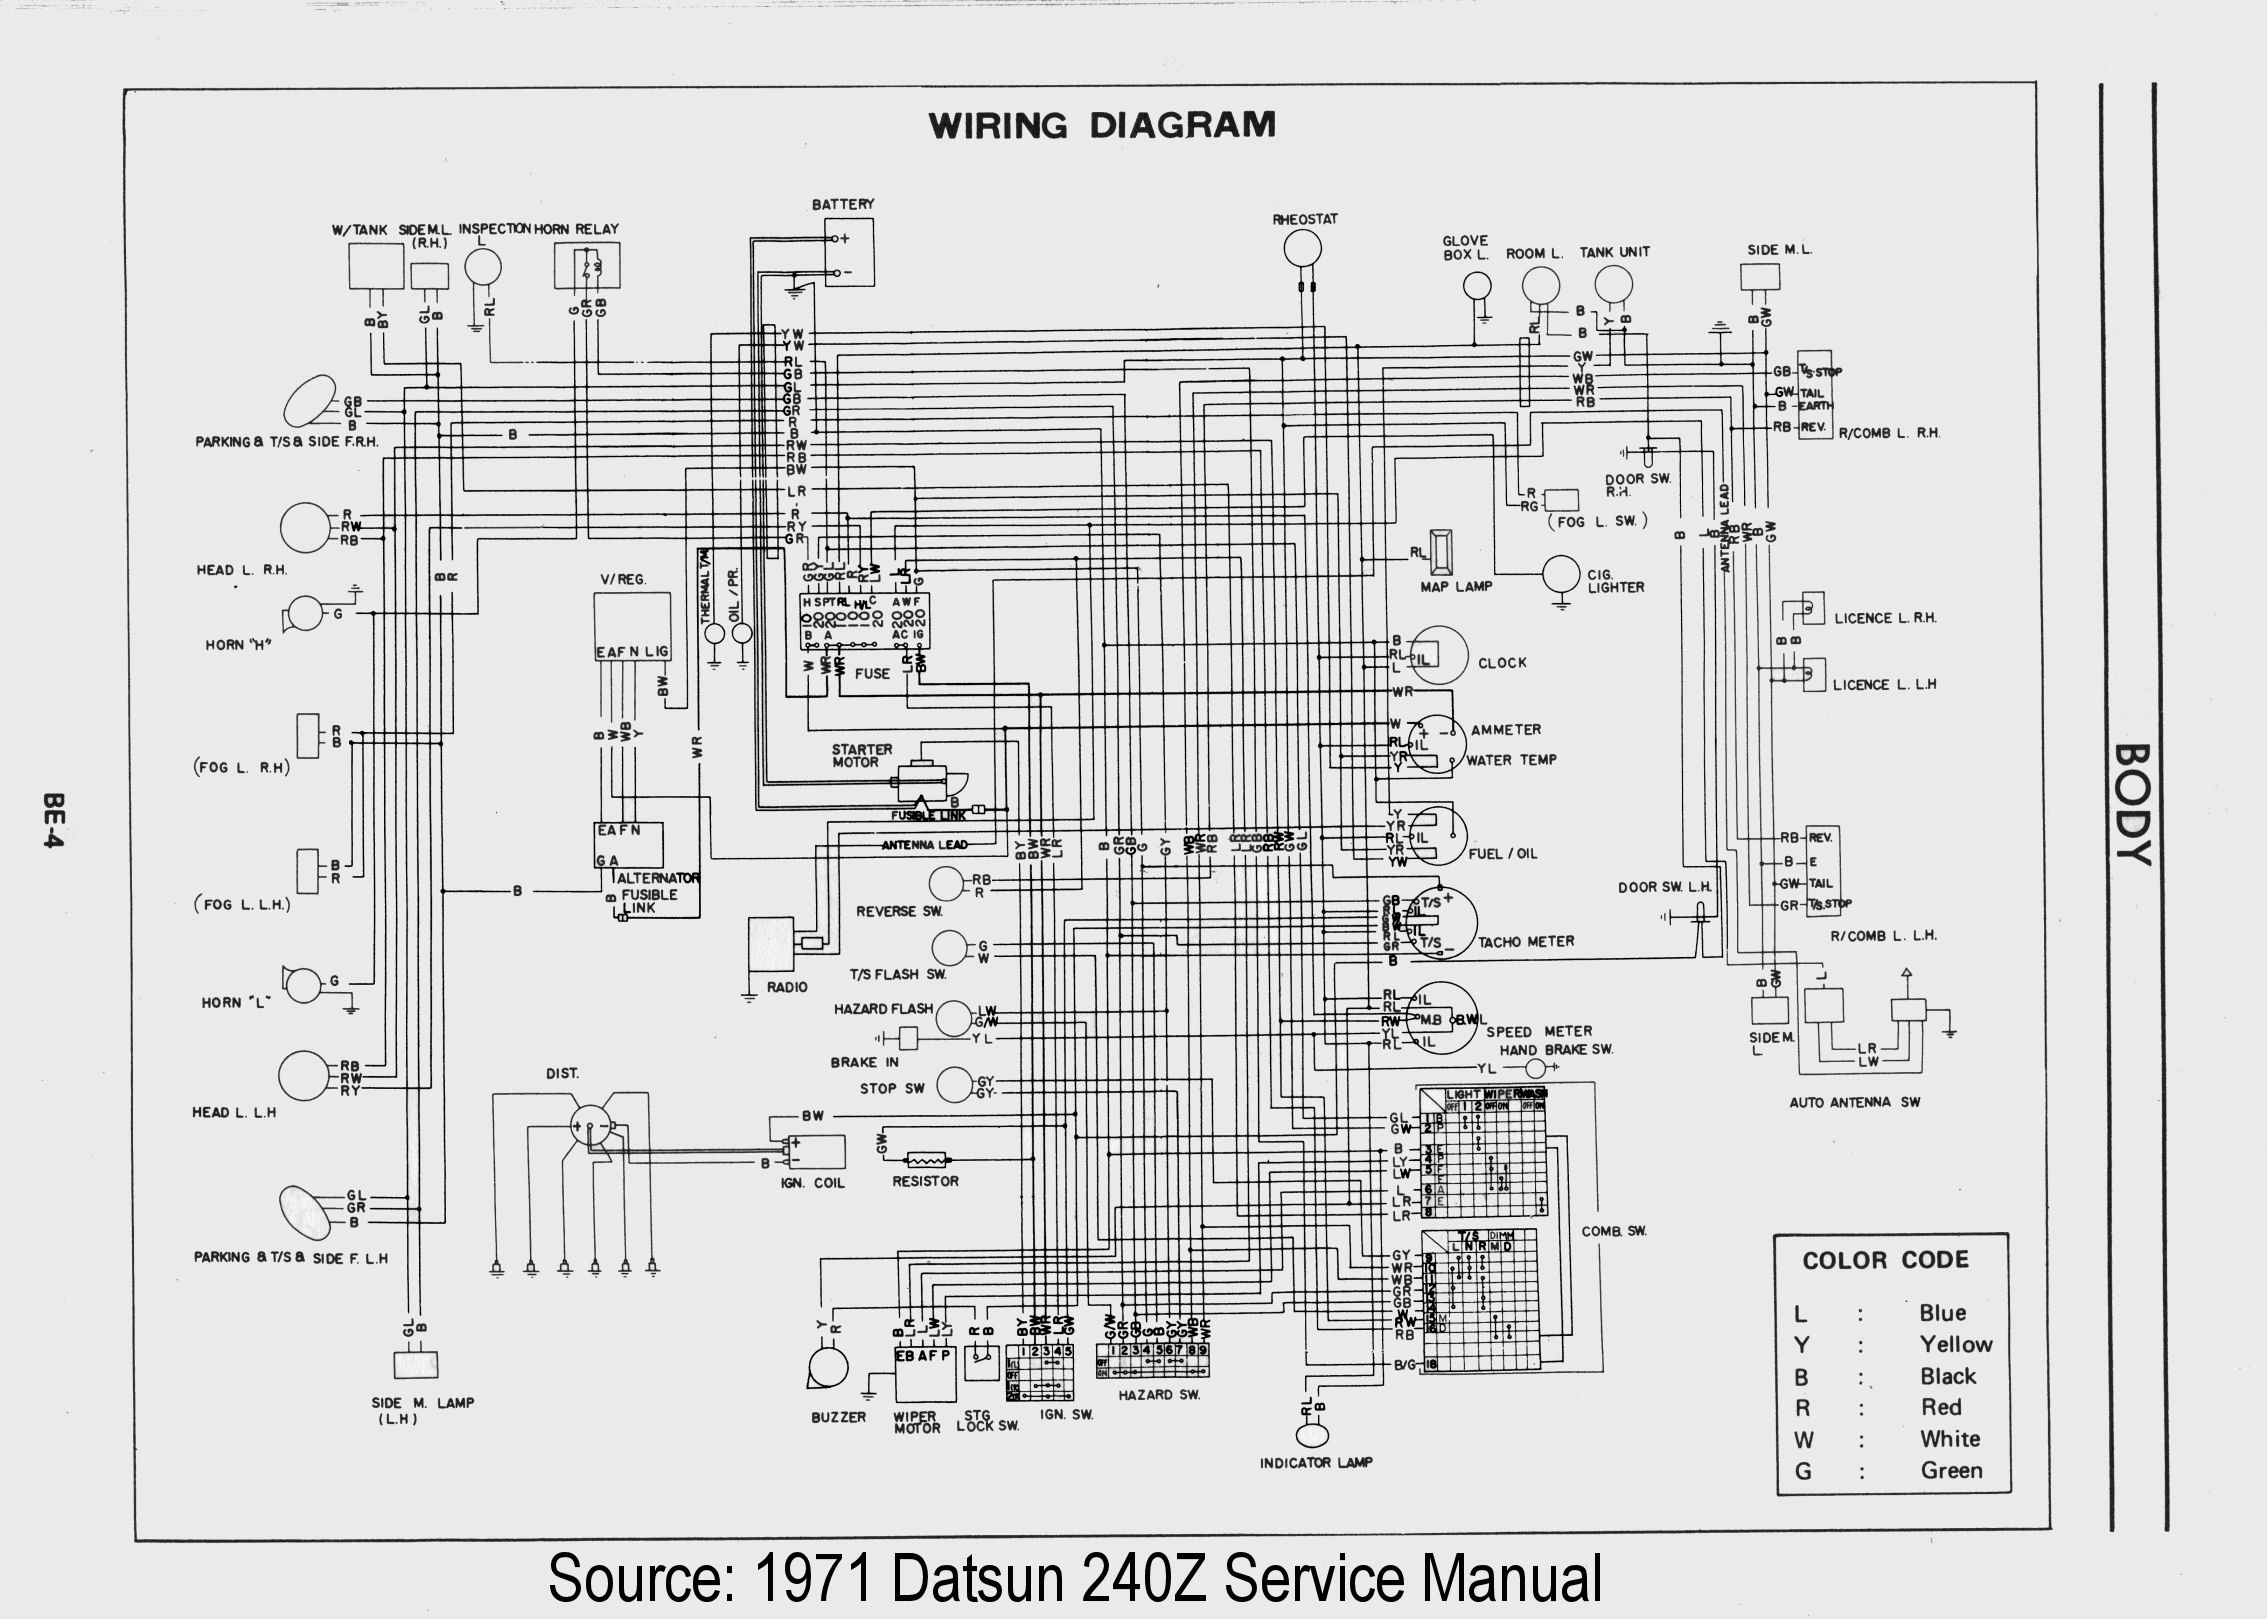 easy wiring diagrams with Generic Wiring Troubleshooting Checklist on Floor Plan as well Index furthermore Wiring Diagram For Protosounds Board in addition SEBP19380656 besides Ford 2 5 V 6 Firing Order And Diagram.